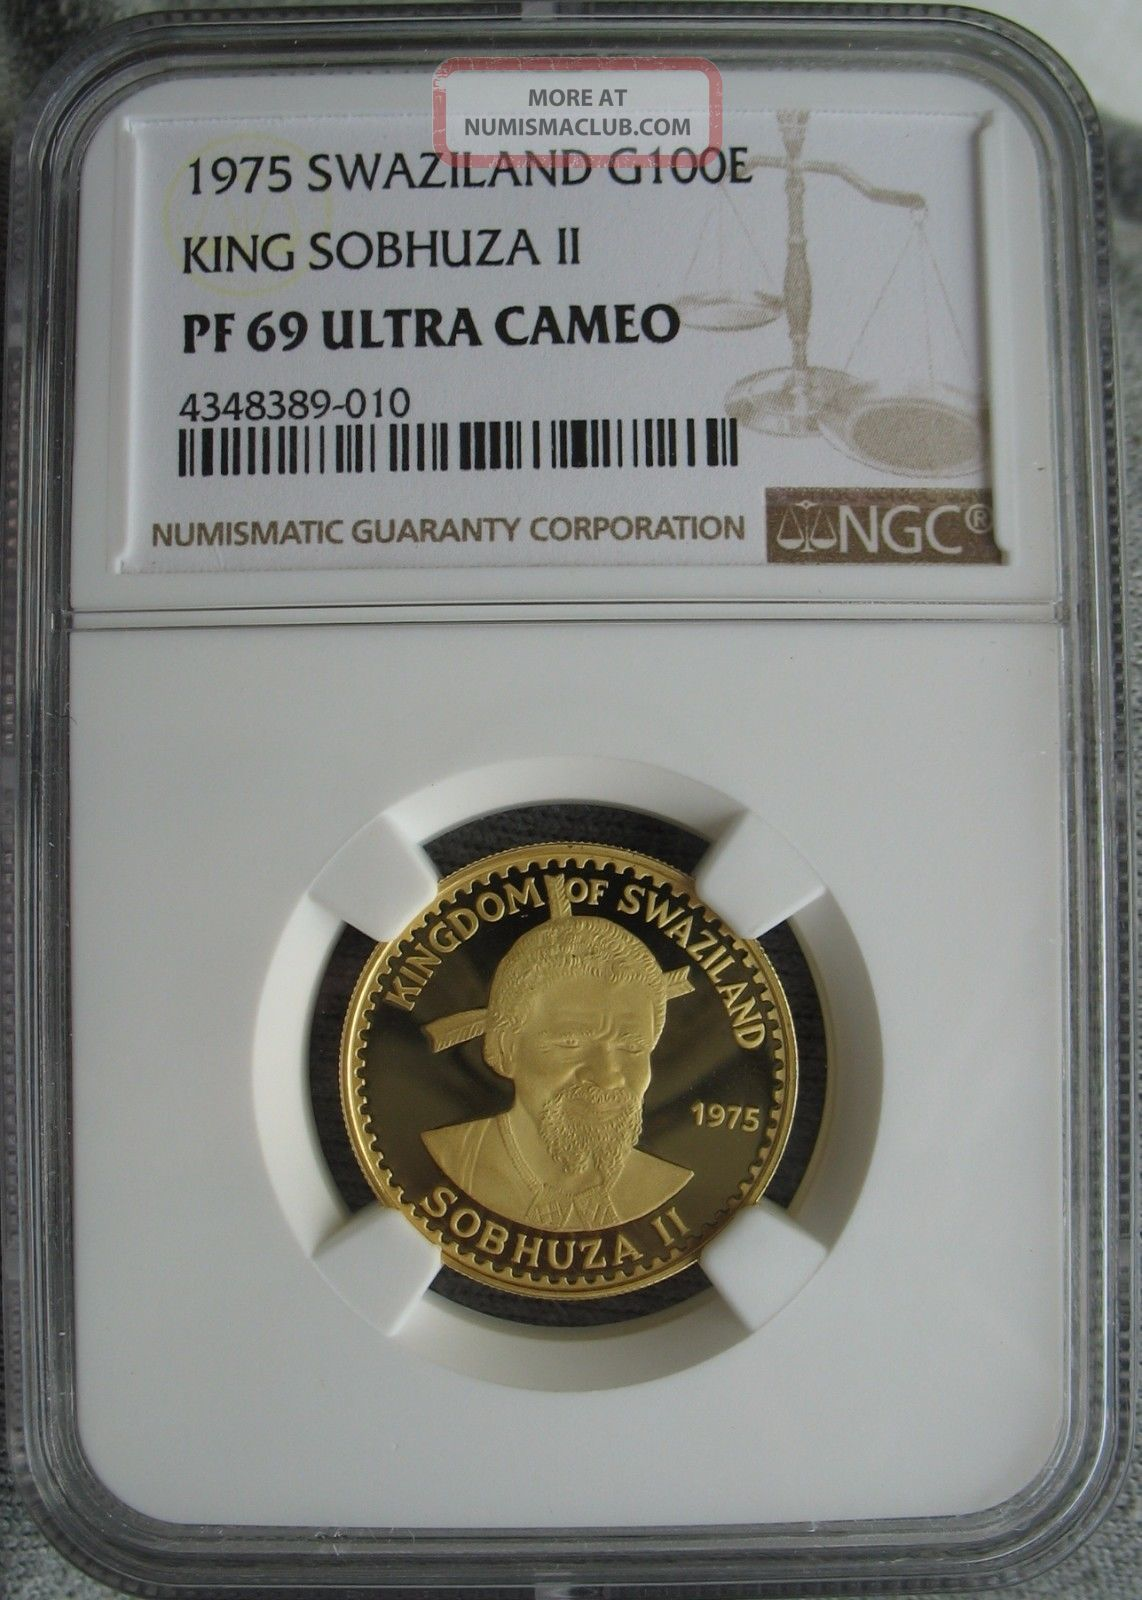 Swaziland 1975 Gold 100 Emalangeni Ngc Pf - 69 Ult.  Cameo King Sobhuza - Ii Coins: World photo